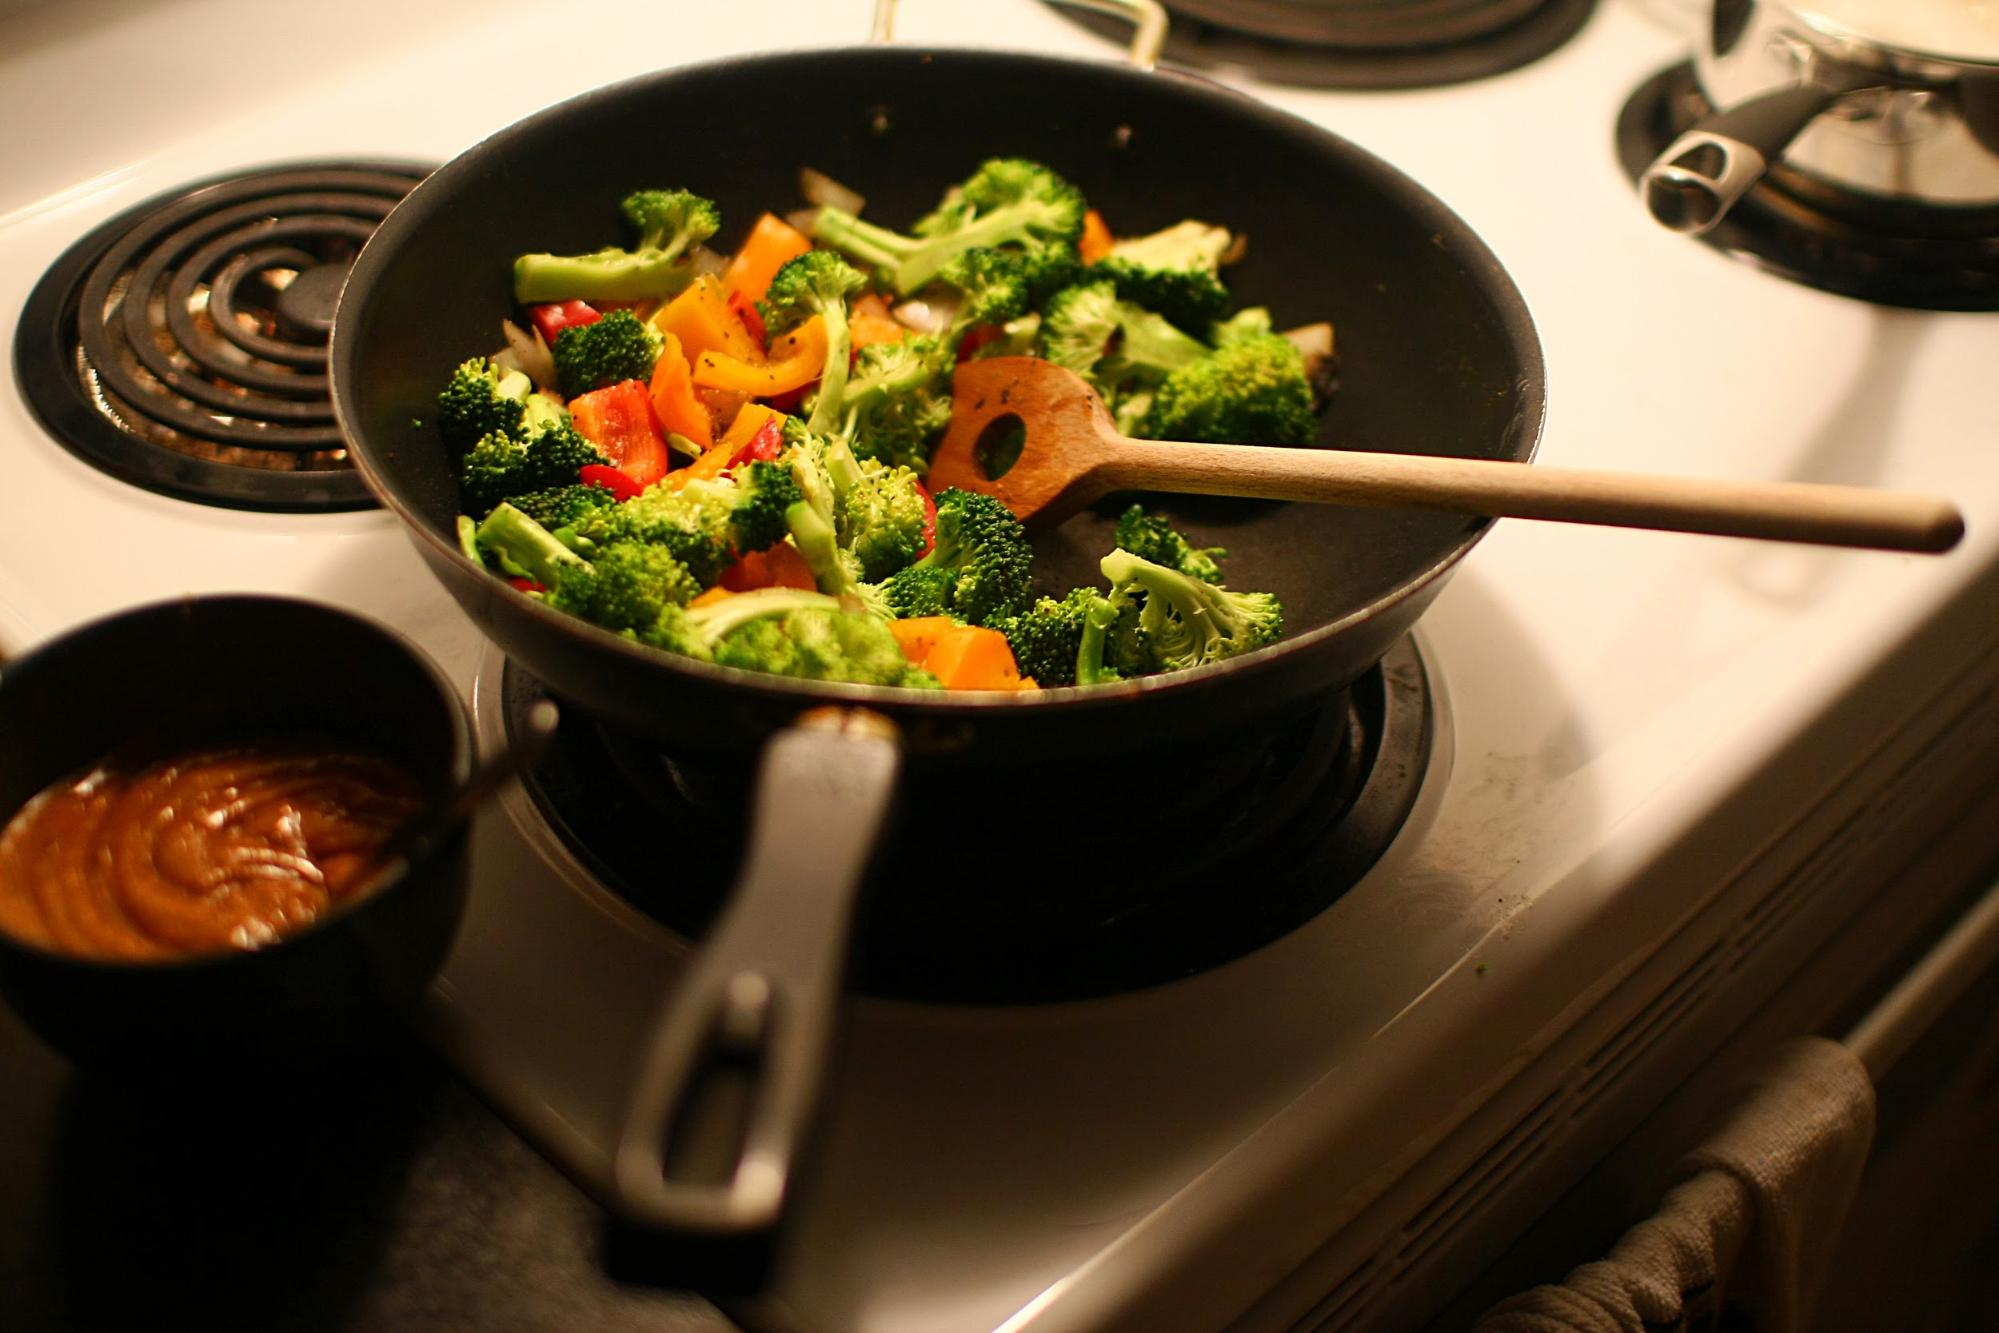 frying veggies - common kitchen mistakes